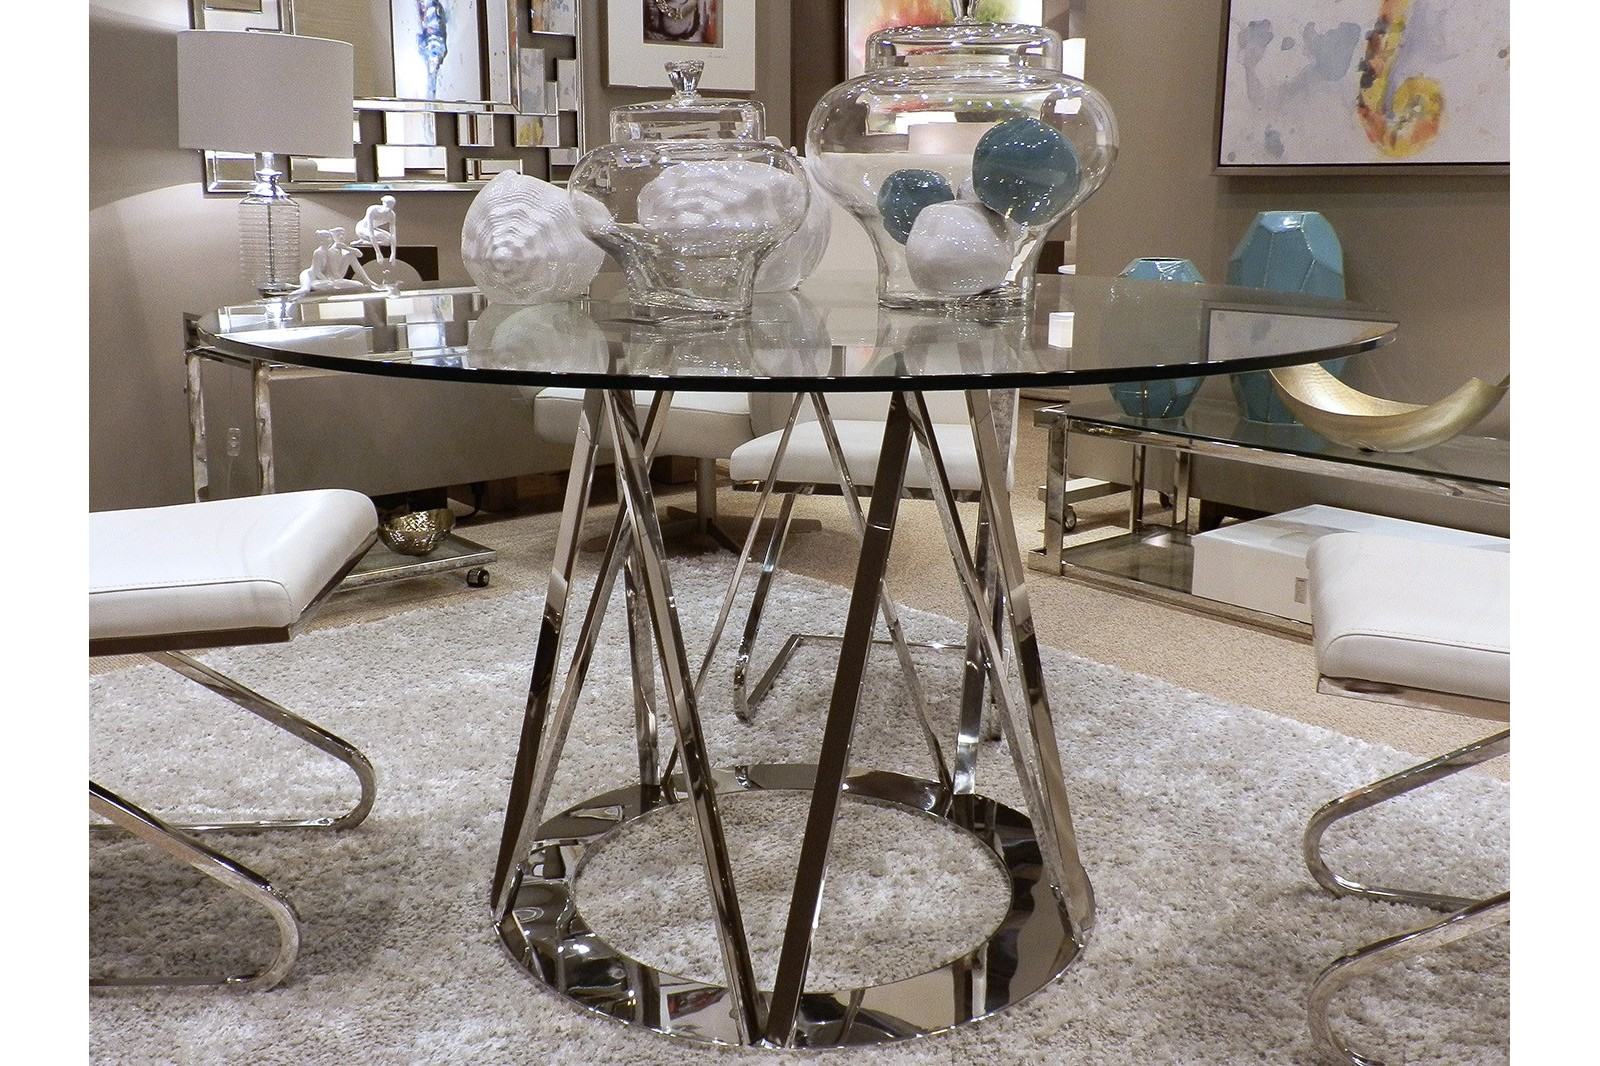 DINING TABLE STAINLESS STEEL/TEMPERED GLASS